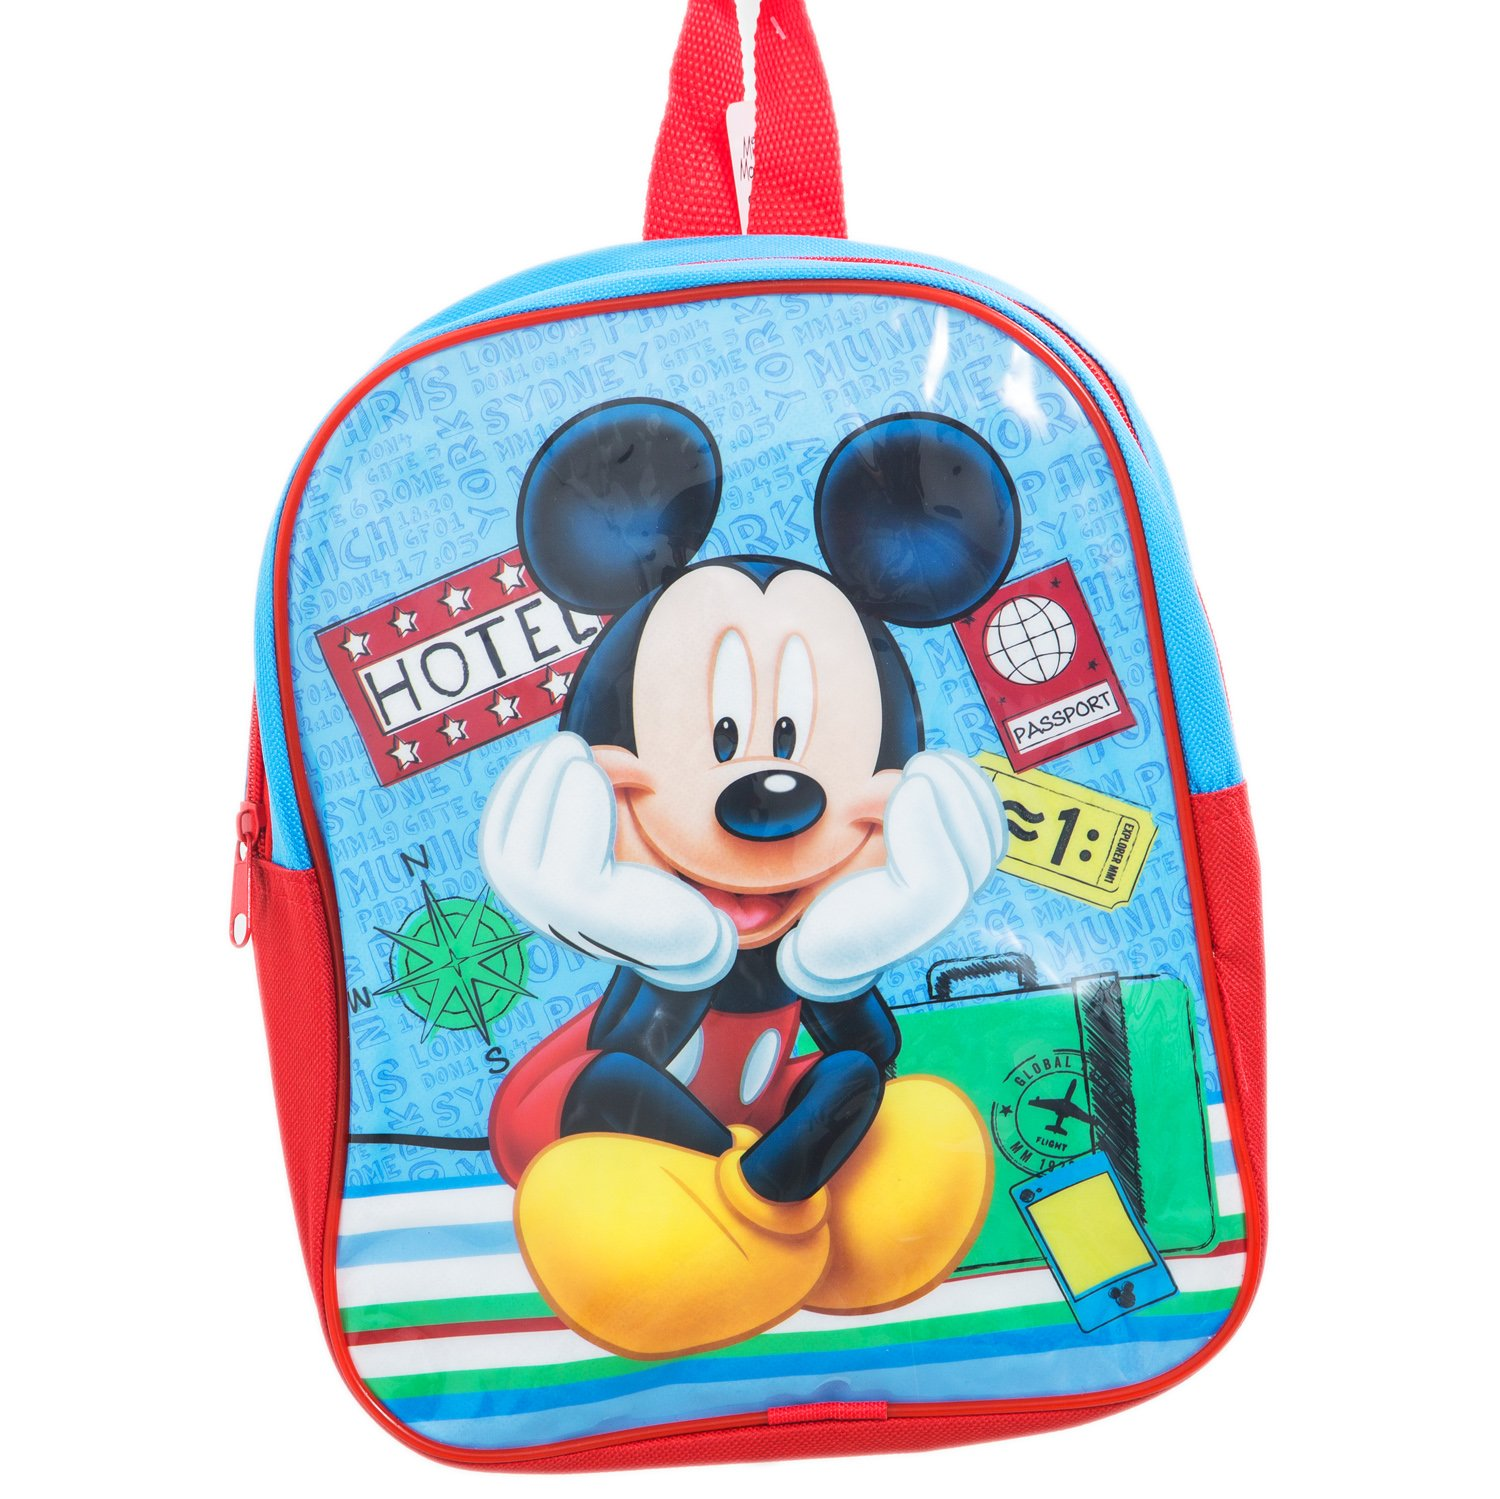 Рюкзак Микки Маус Disney (Arditex), WD11419